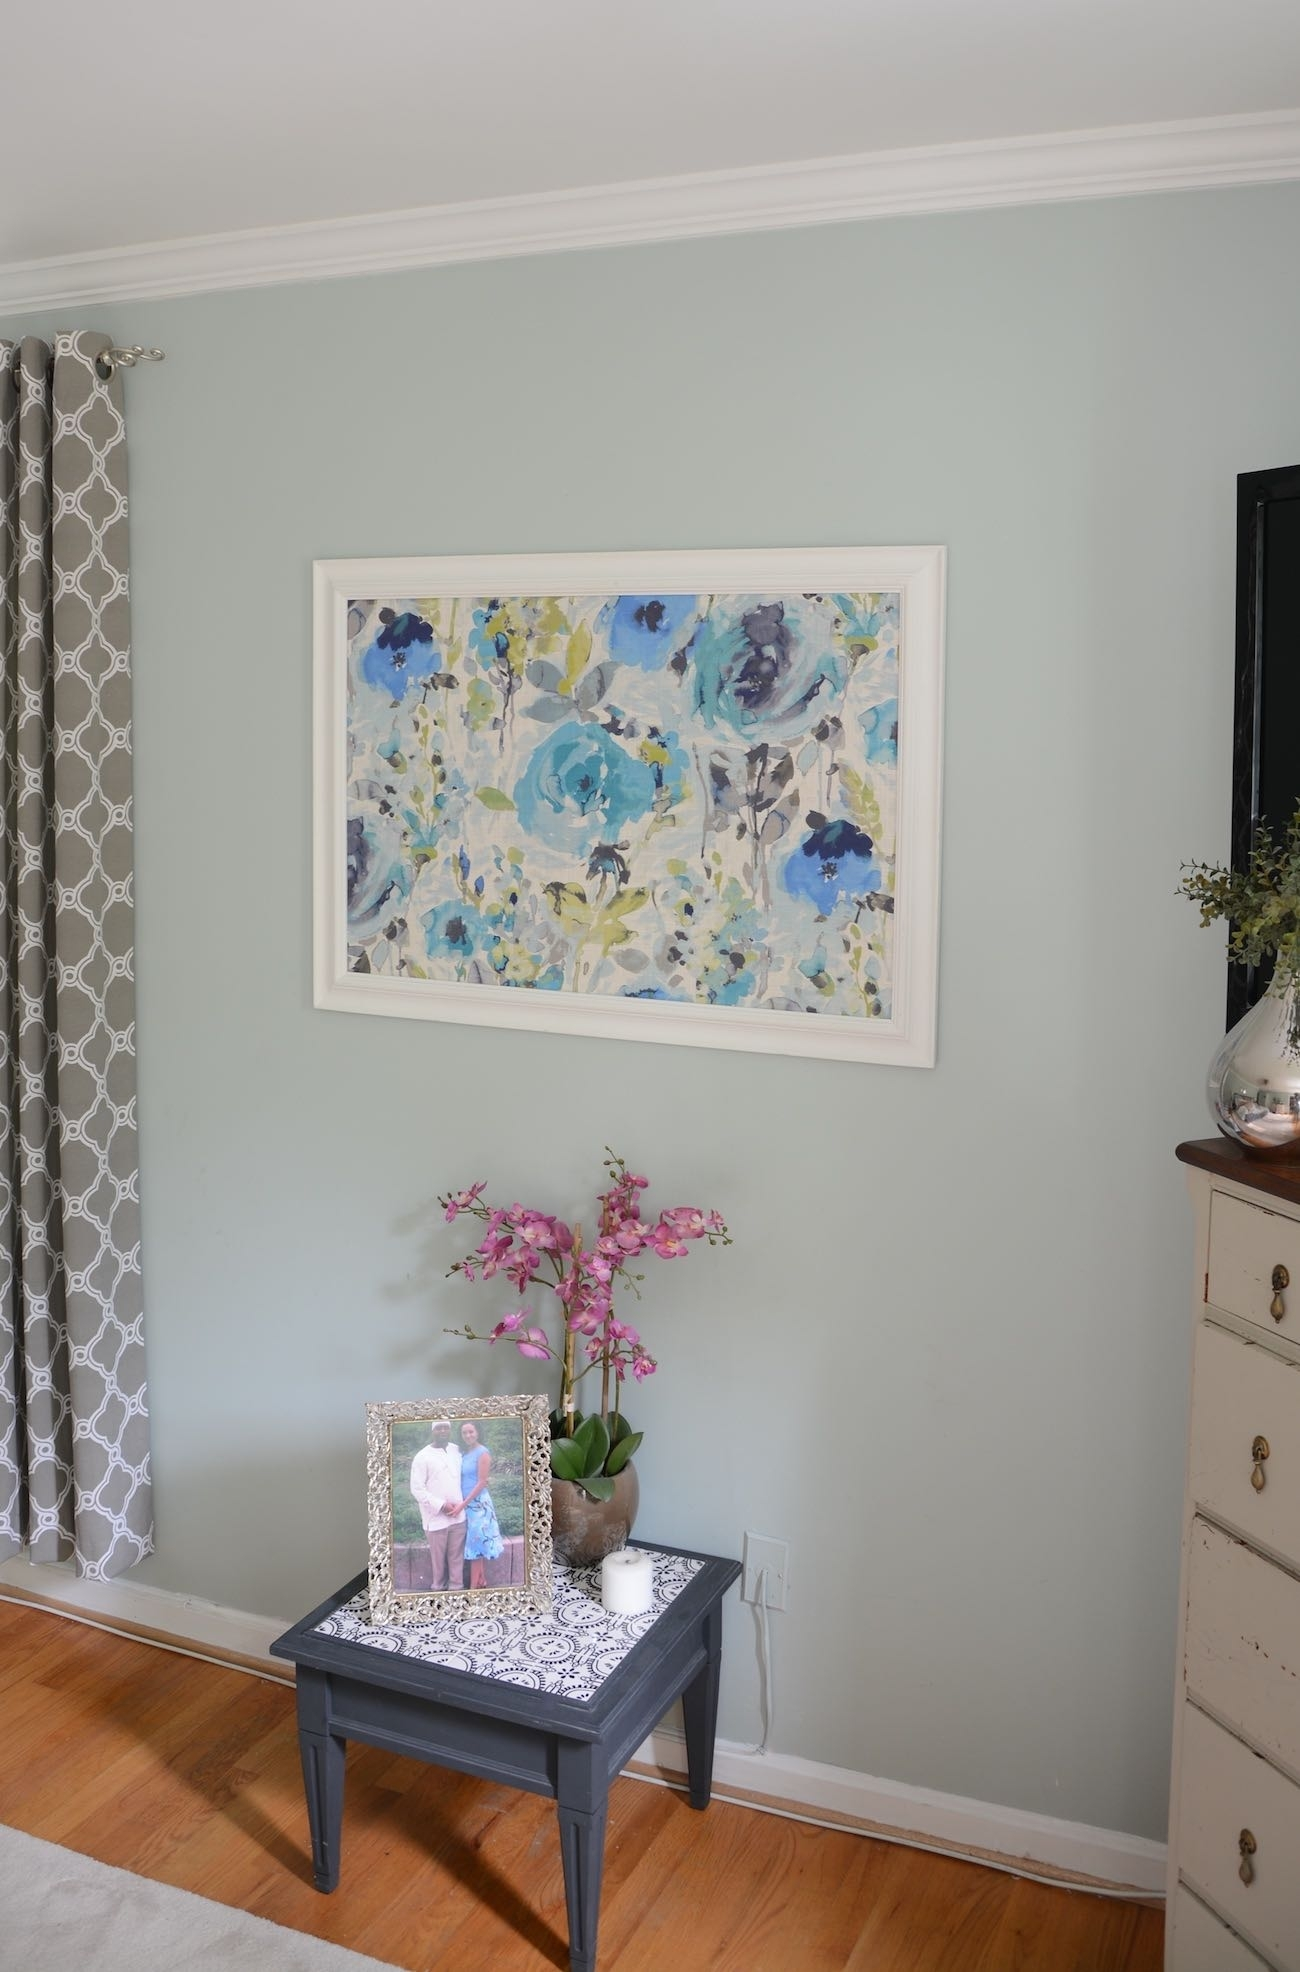 Sherwin Williams Paint Reviews 15 Inspirations Of Fabric Wall Art Frames